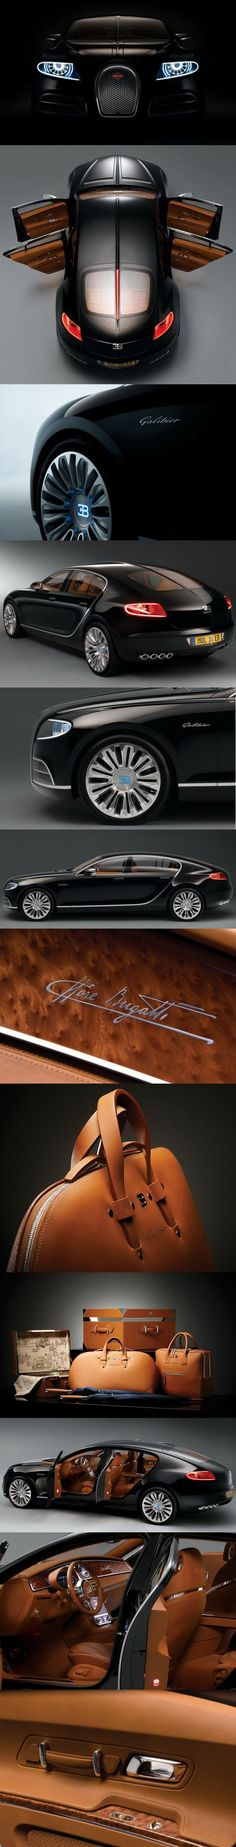 "Bugatti Galibier to be ""faster than anything on the market"""